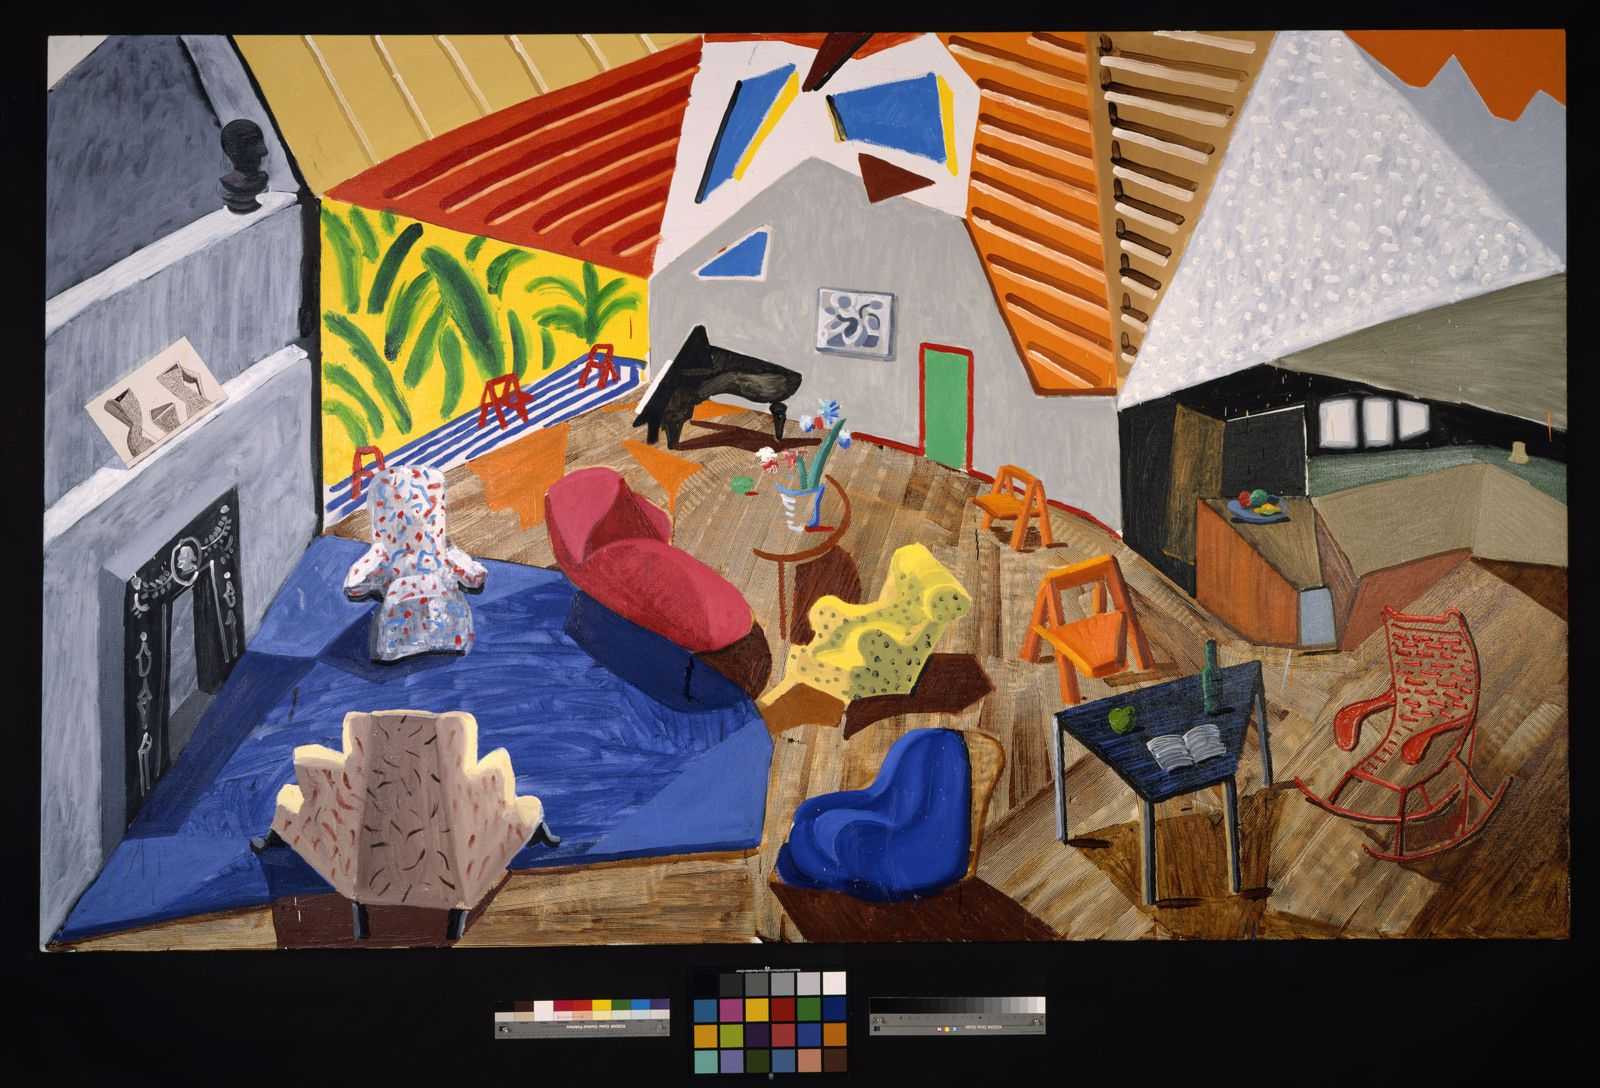 """Large Interior, Los Angeles"", 1988 de David HOCKNEY - Courtesy Collection Metropolitan Museum of Art, New York"